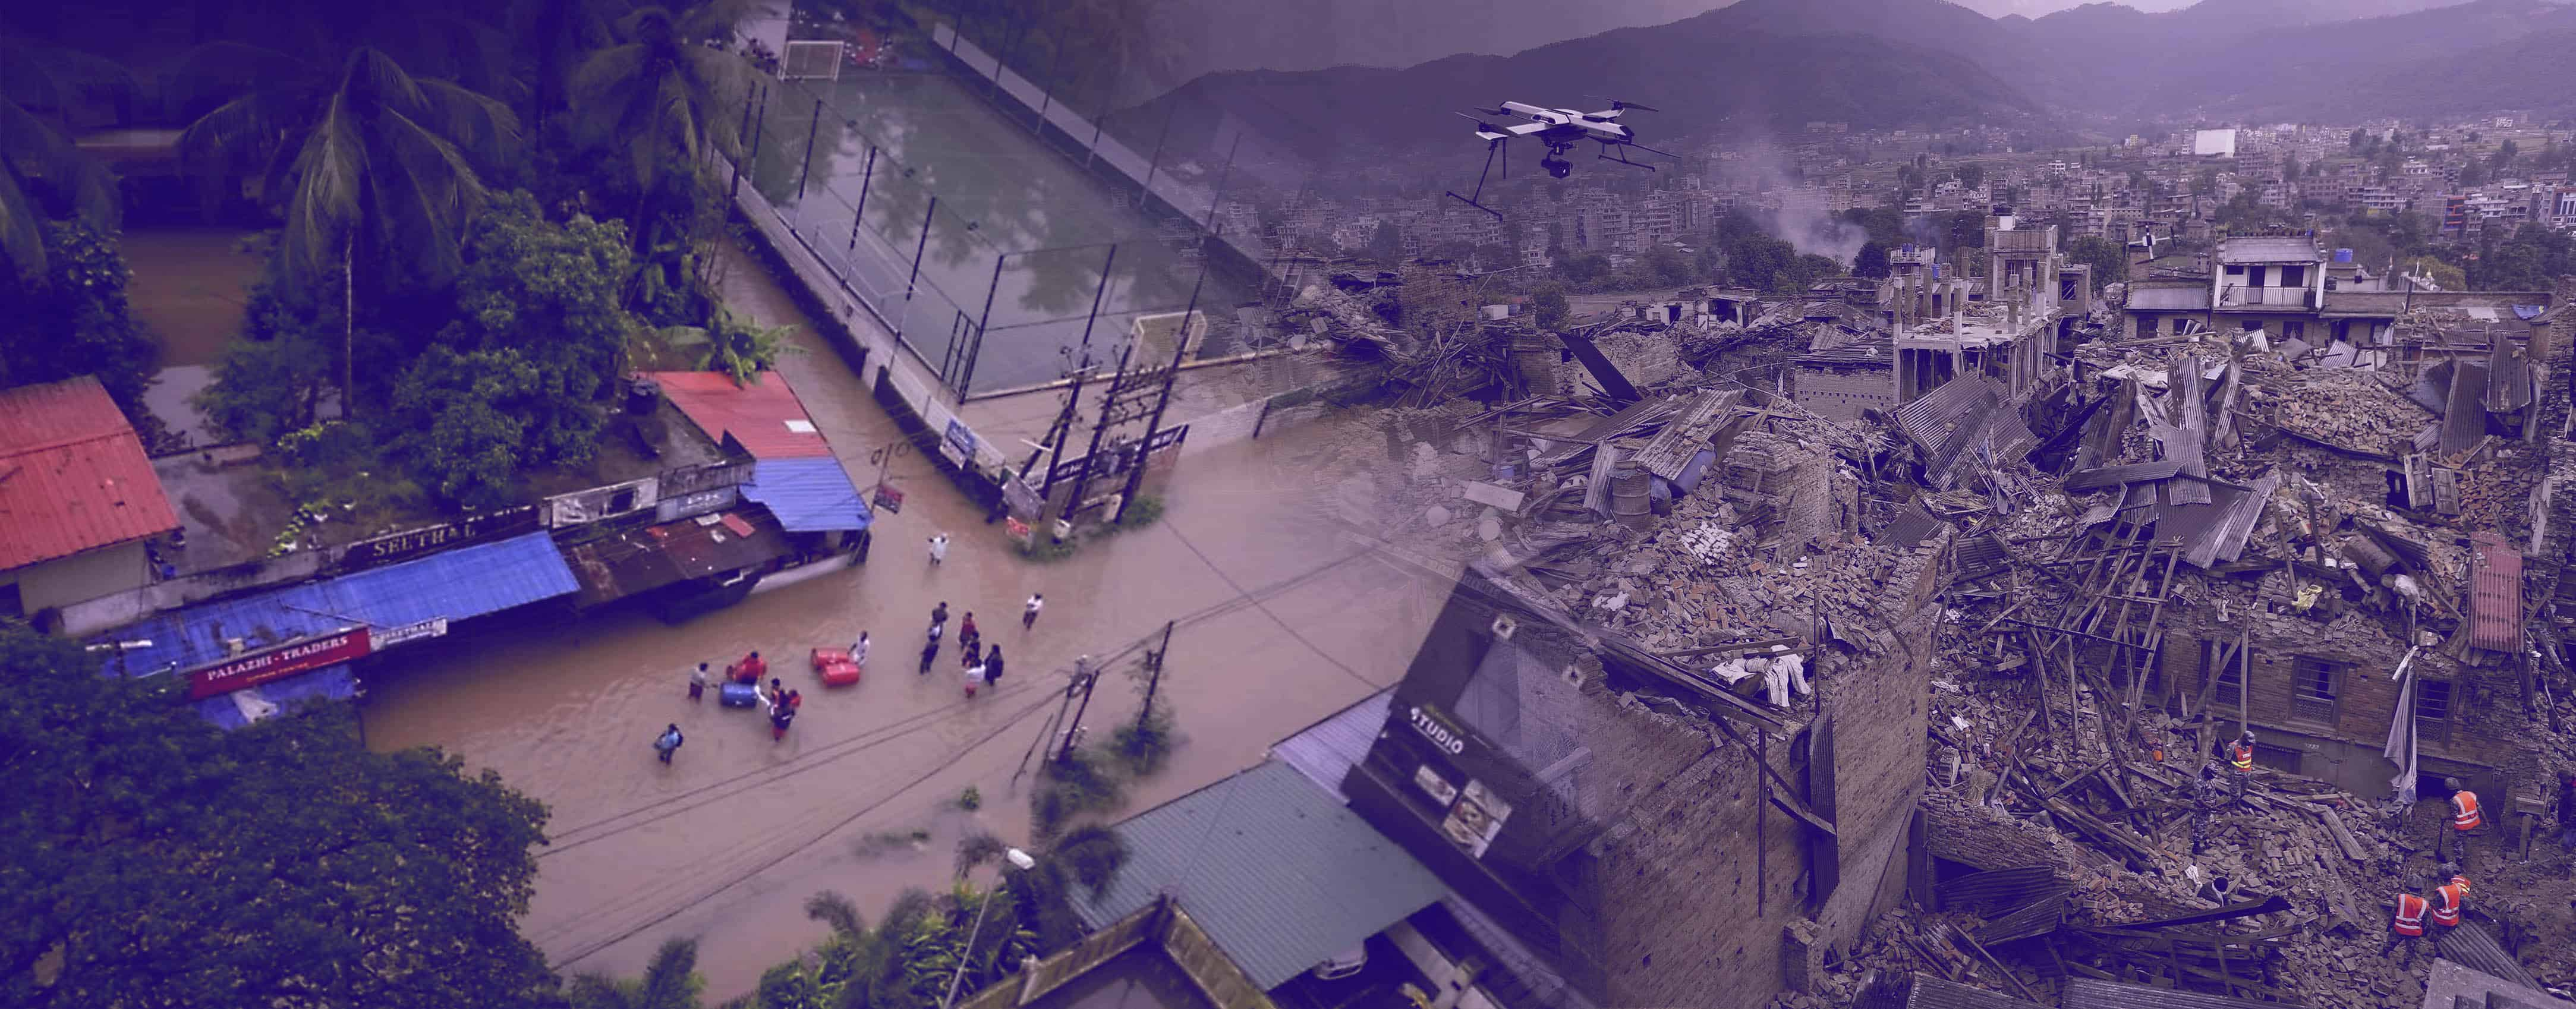 "Using Drones For Disaster Relief Is A Life-Saver In ""Impossible"" Situations"